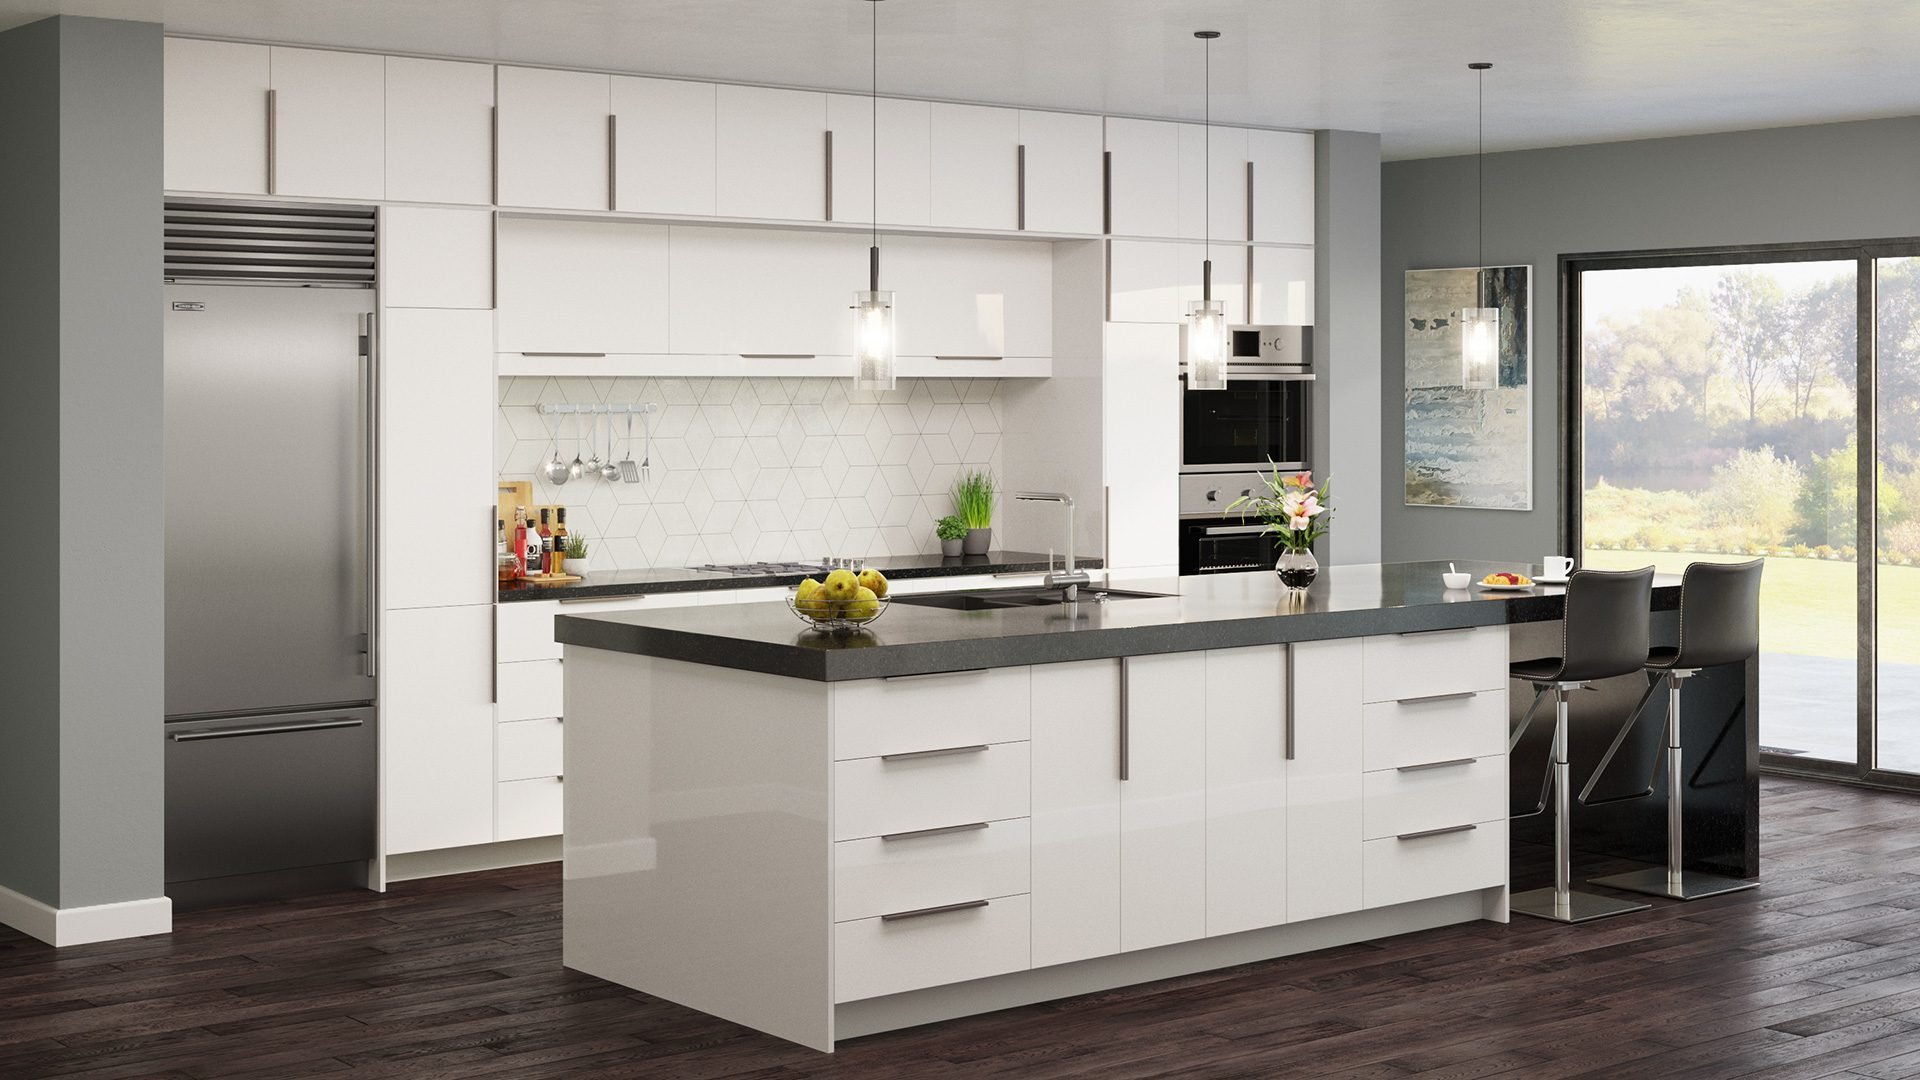 Framed Vs Frameless Kitchen Cabinets Cabinetcorp